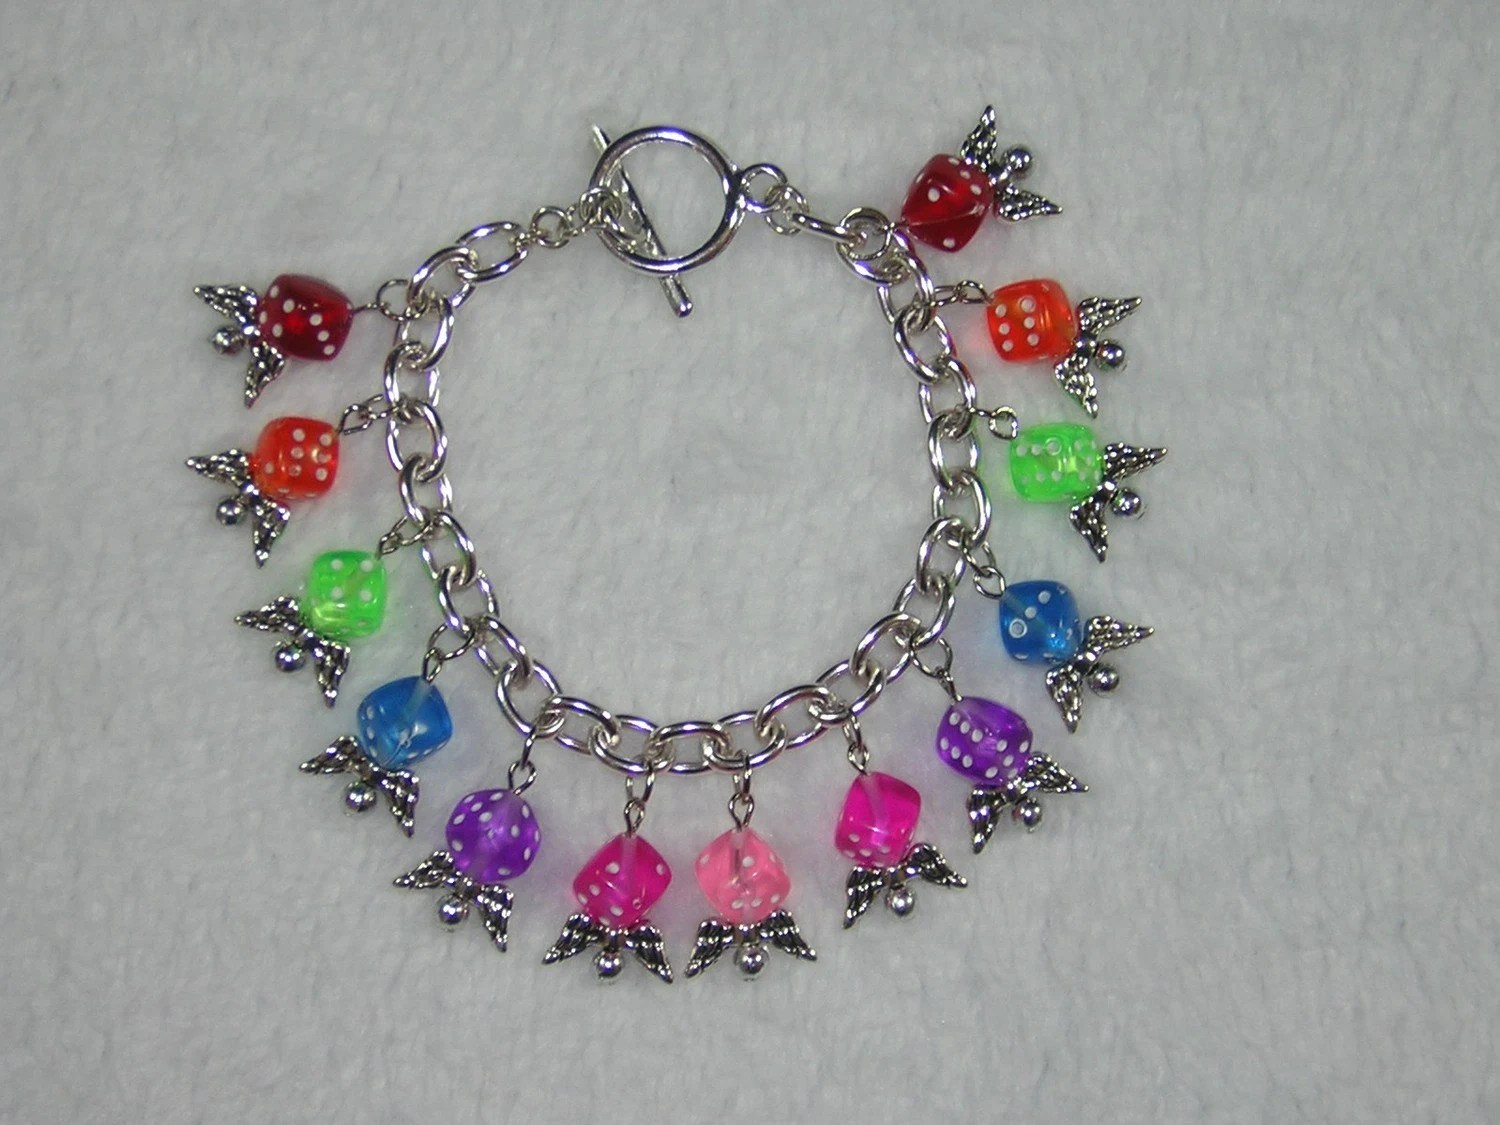 Rainbow Flying Dice Beaded Charm Bracelet for Gamer Girls - Handmade by Rewondered D225B-00001 - $29.95